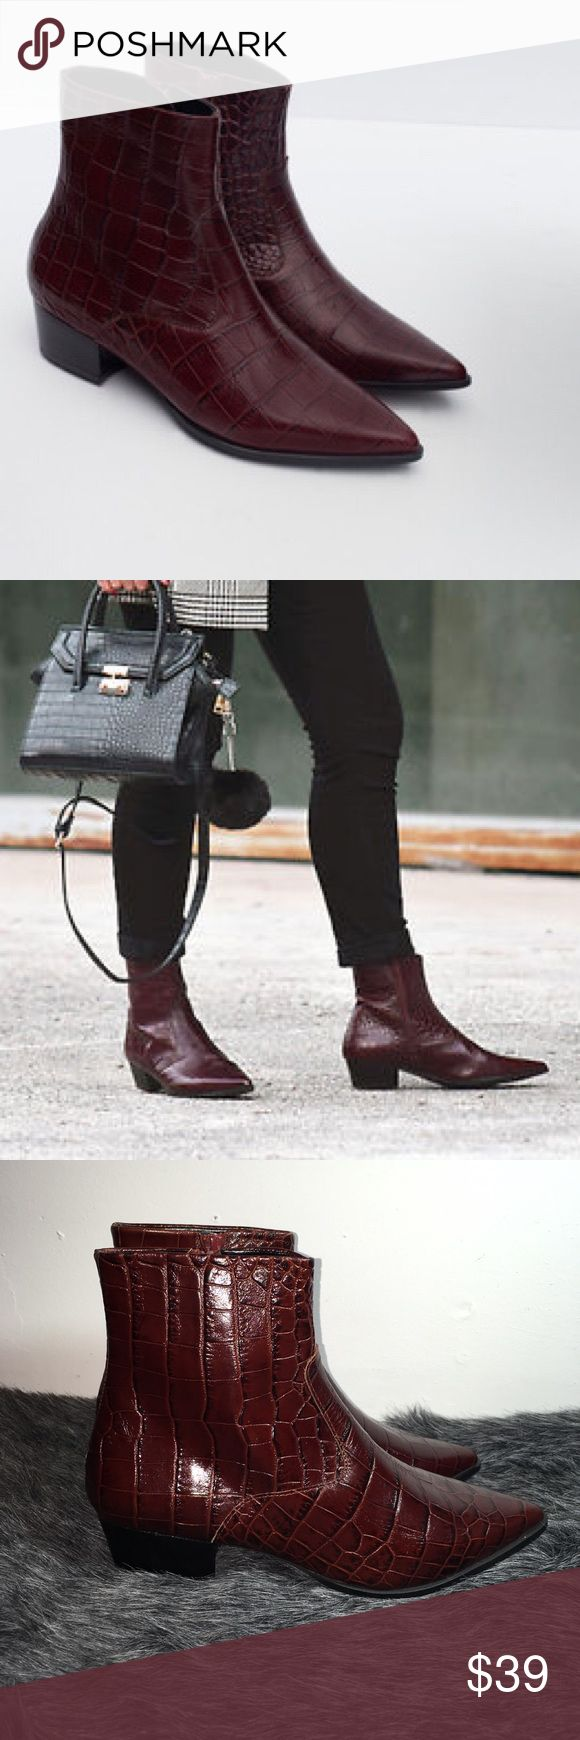 Women's Burgundy Croc Print Leather Ankle Boots 😍 ZARA MOCK CROC PRINT LEATHER ANKLE BOOTS. Leather ankle boots. Embossed detail. Pointed toe. Inside zip. Square heel. Heel height of 3,8 cm. 😍 Zara Shoes